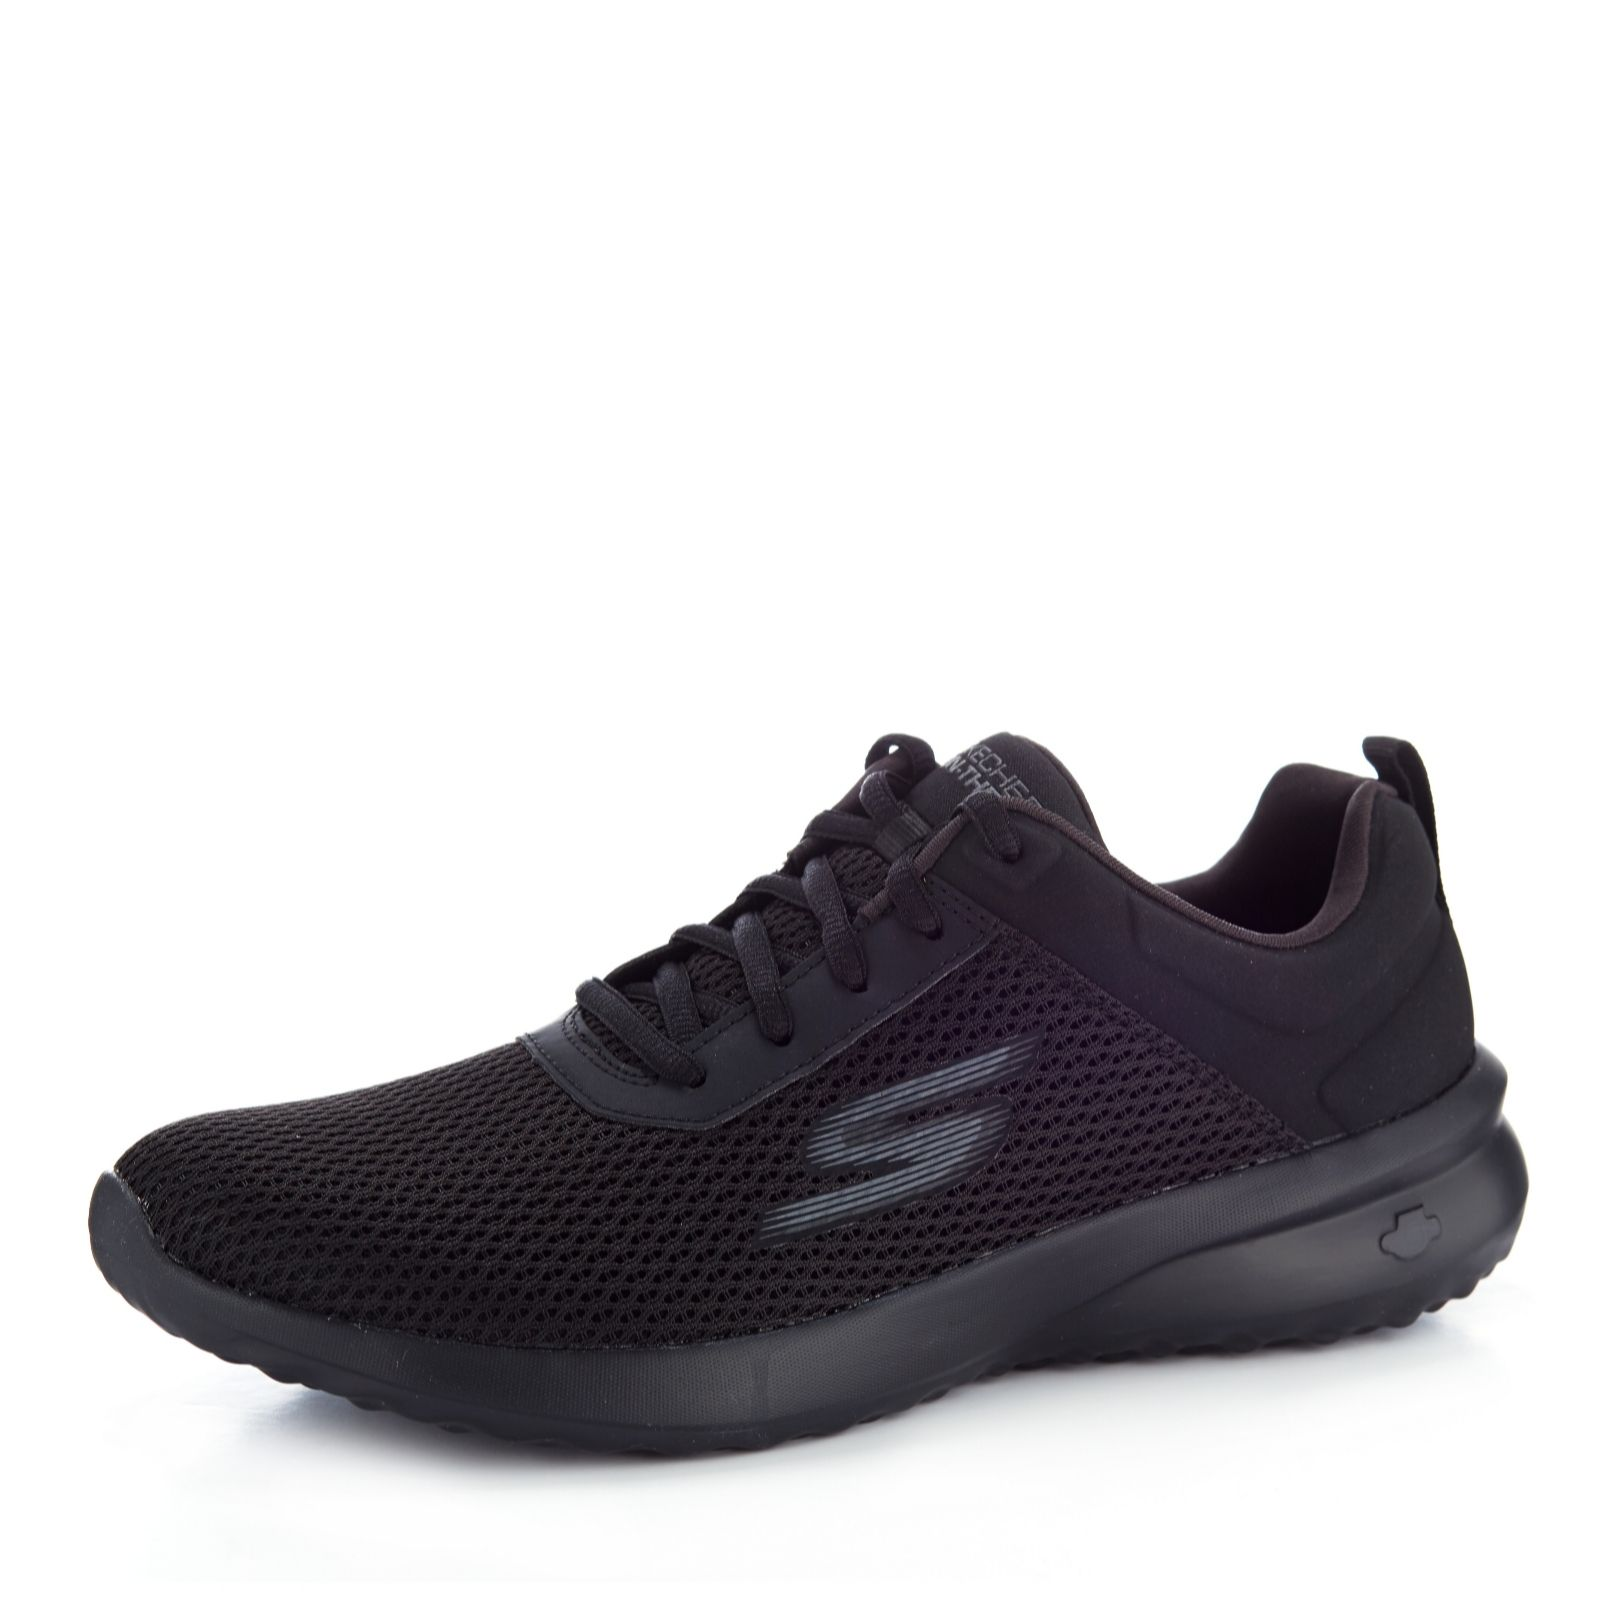 newest collection 004da 24f3a Skechers On The Go City 3.0 Mesh Lace Up Men s Trainer - QVC UK